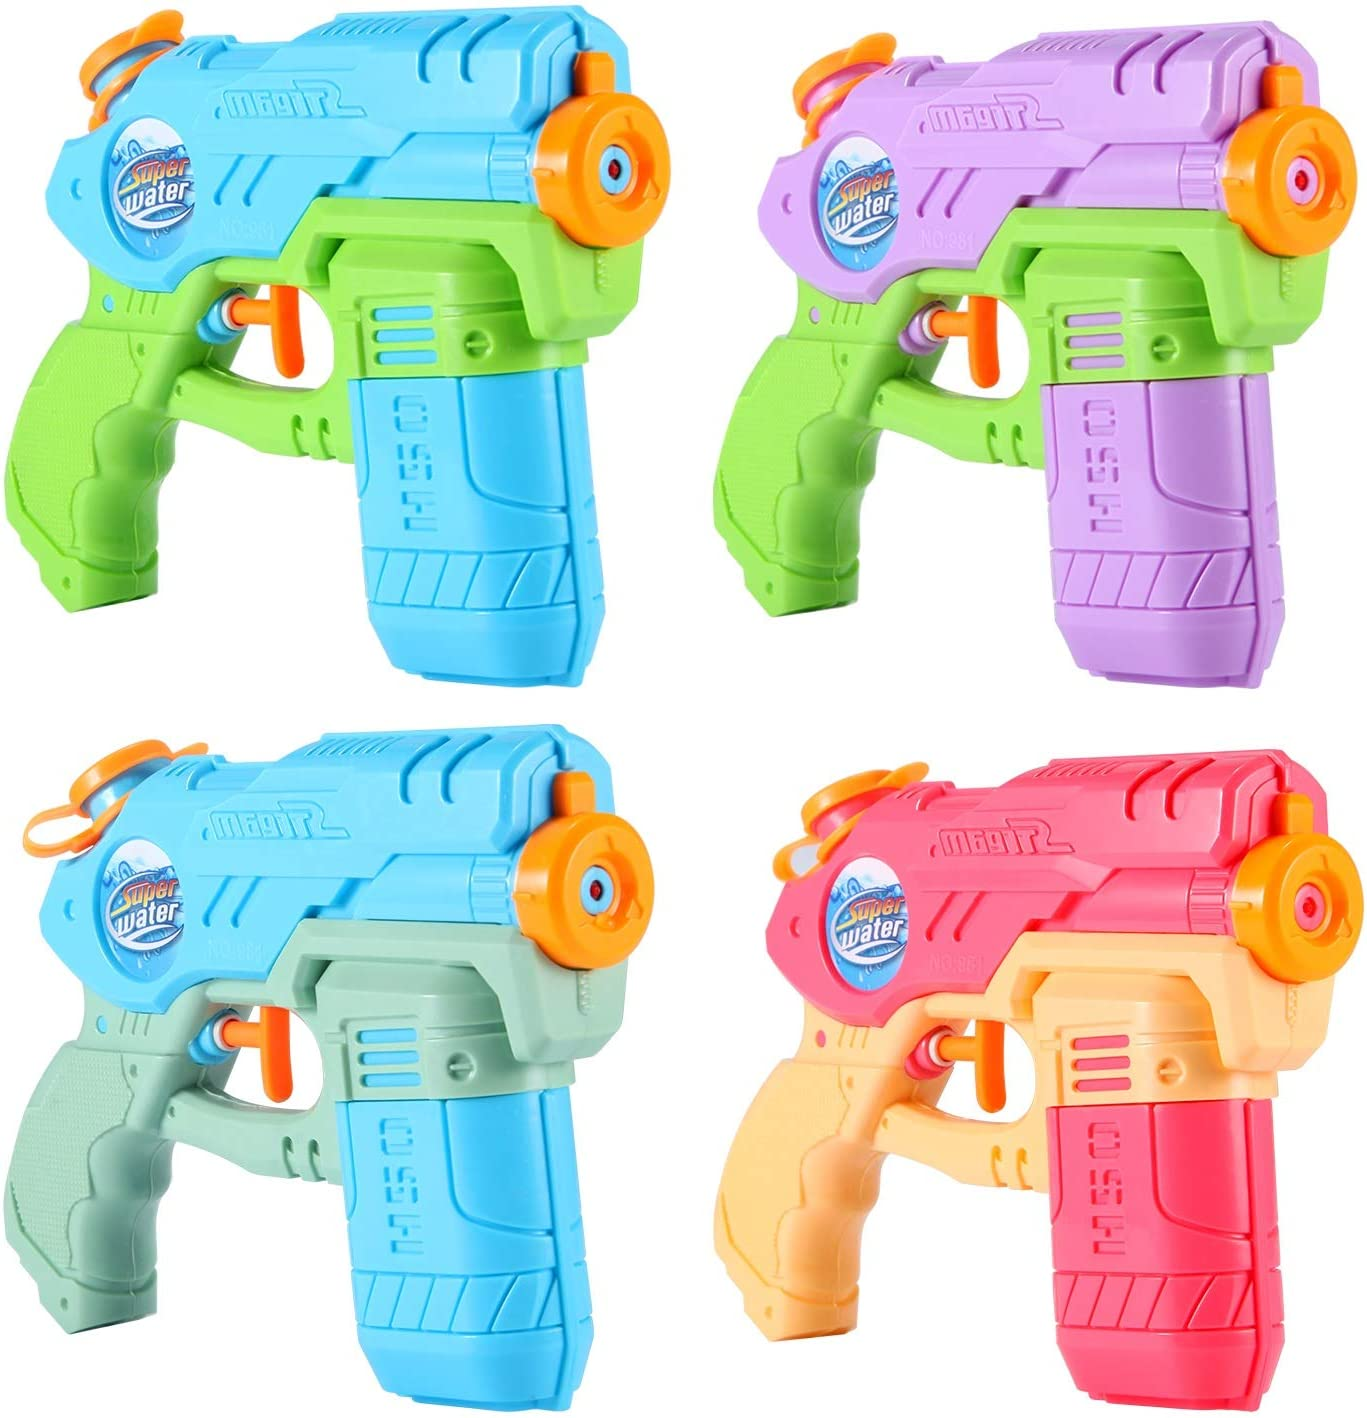 AESGOGO Squirt Water Guns for Kids Toddlers,Outdoor Water Toys for 3 4 5 6 7 8 9 Year Old Boys Girls Gifts,Summer Toys for Pool Yard Beach: Toys & Games